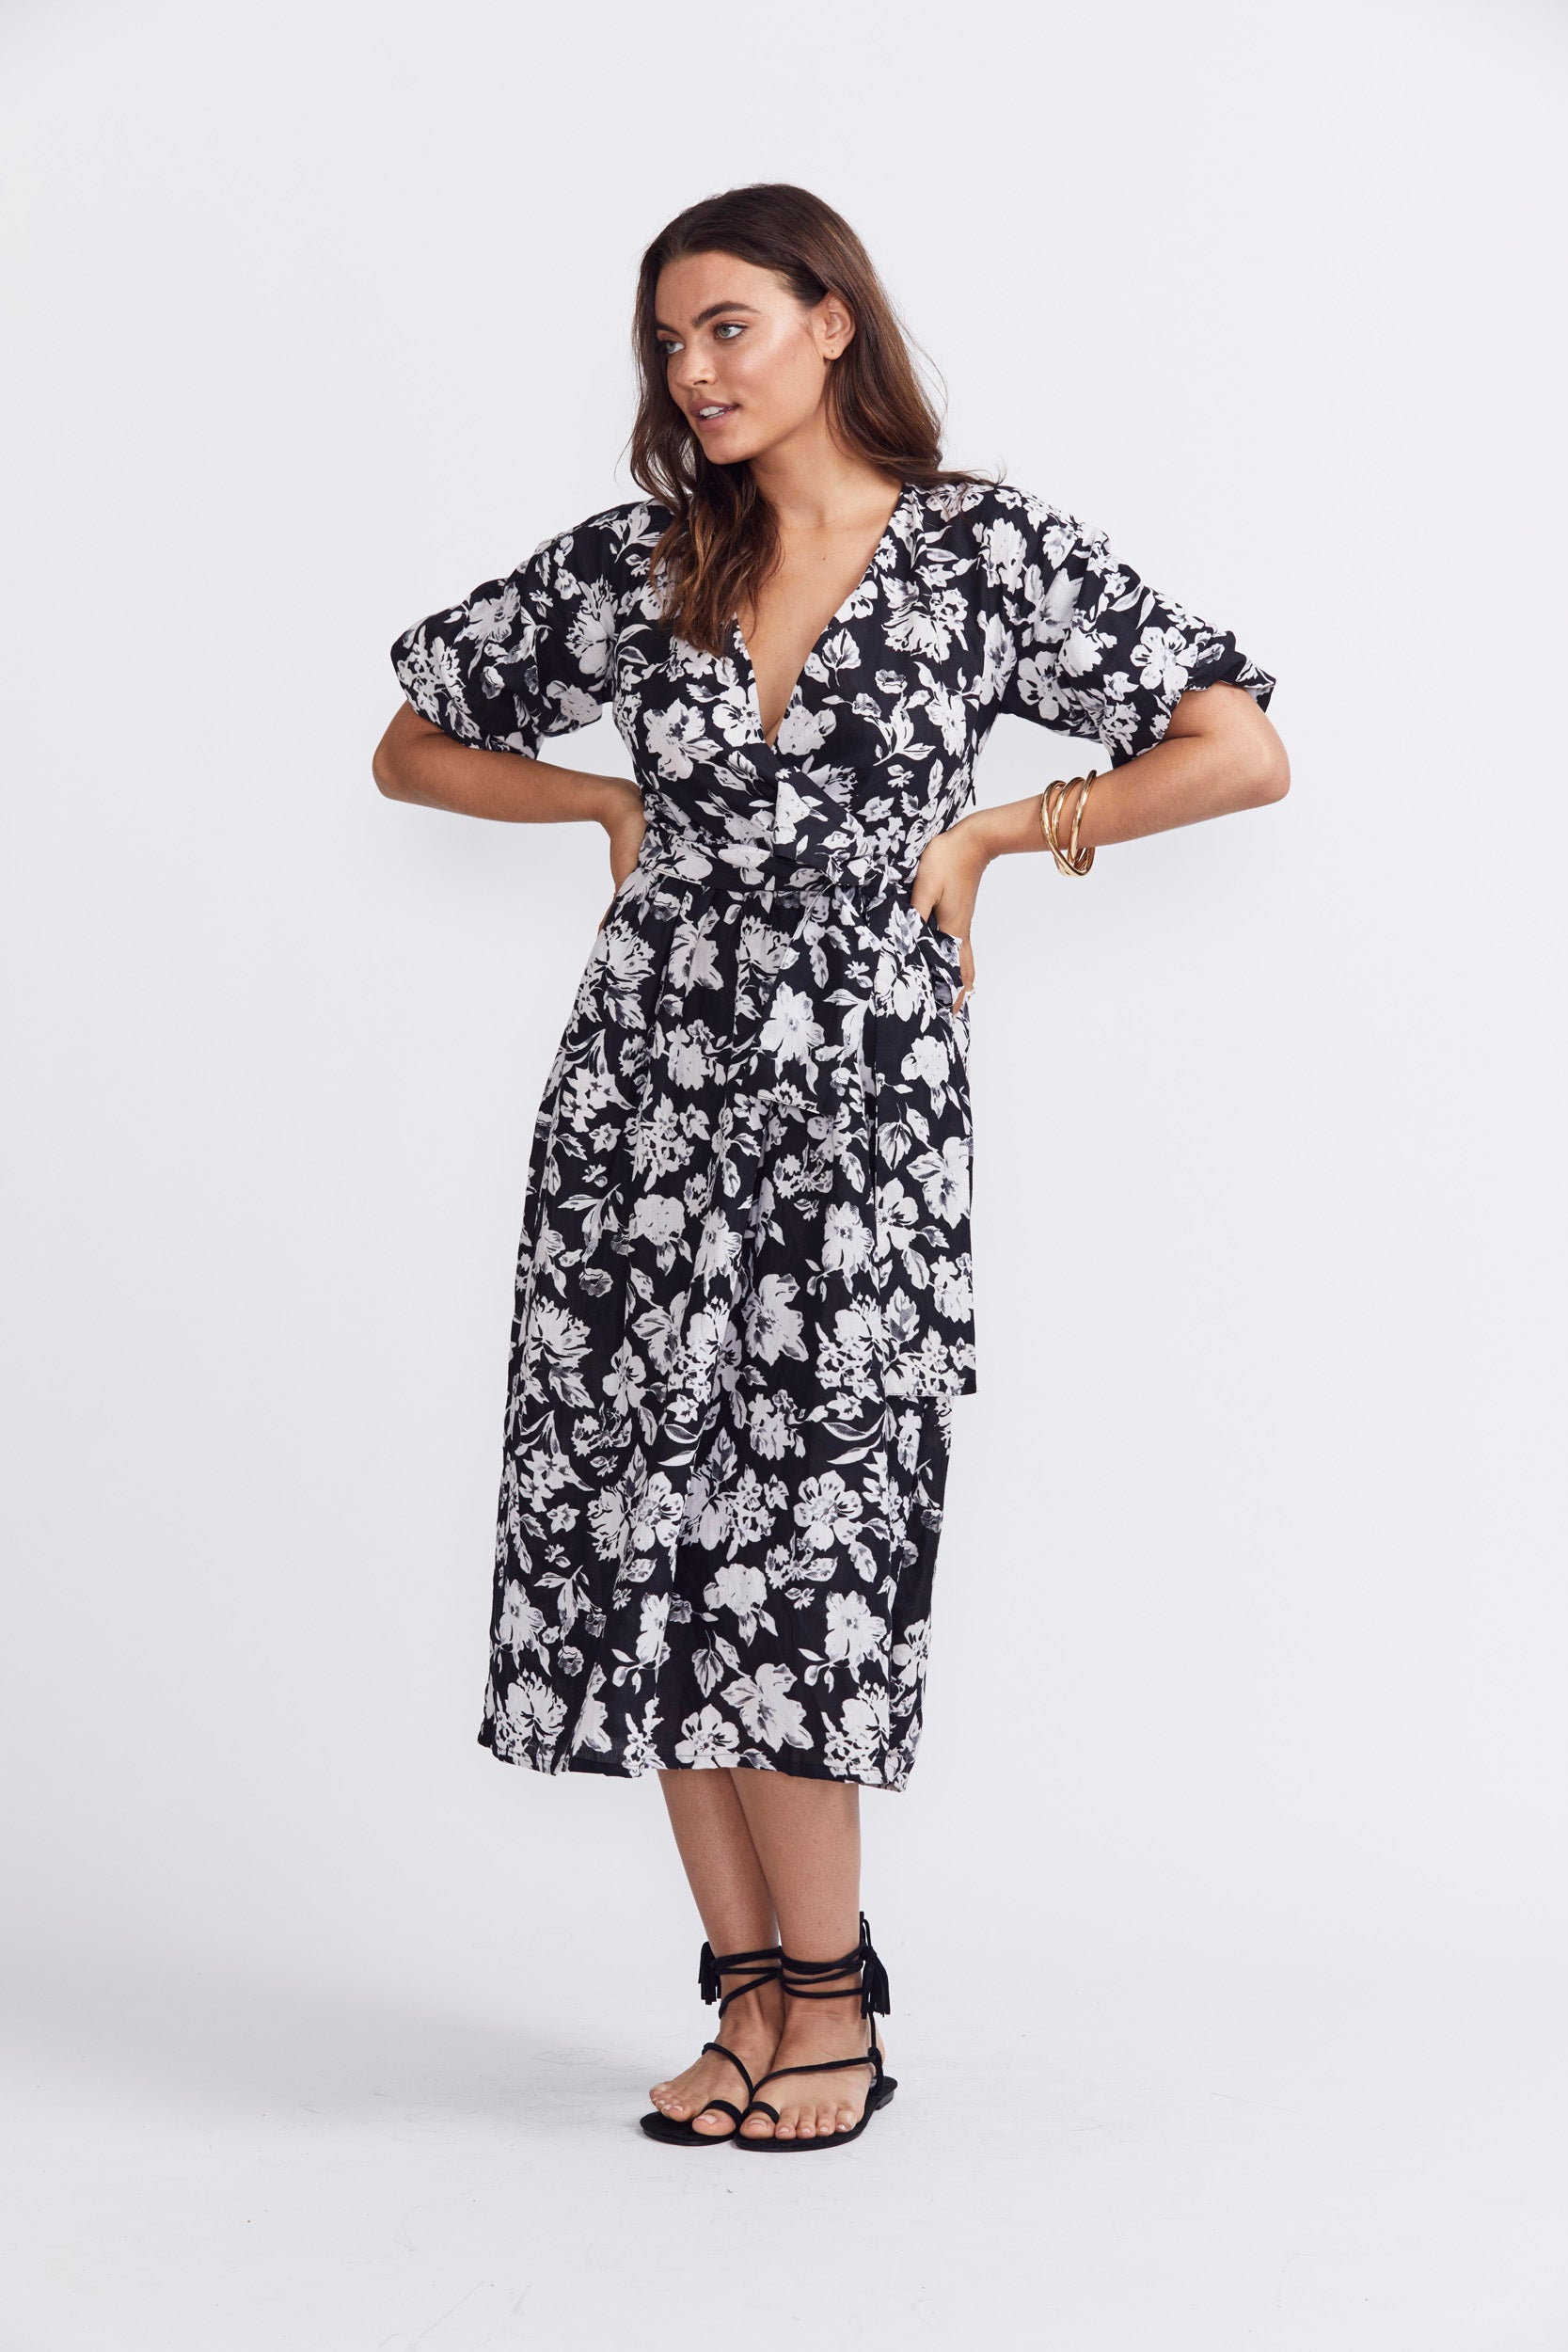 ÉSS THE LABEL The Crystal Wrap Dress - Black & White Floral